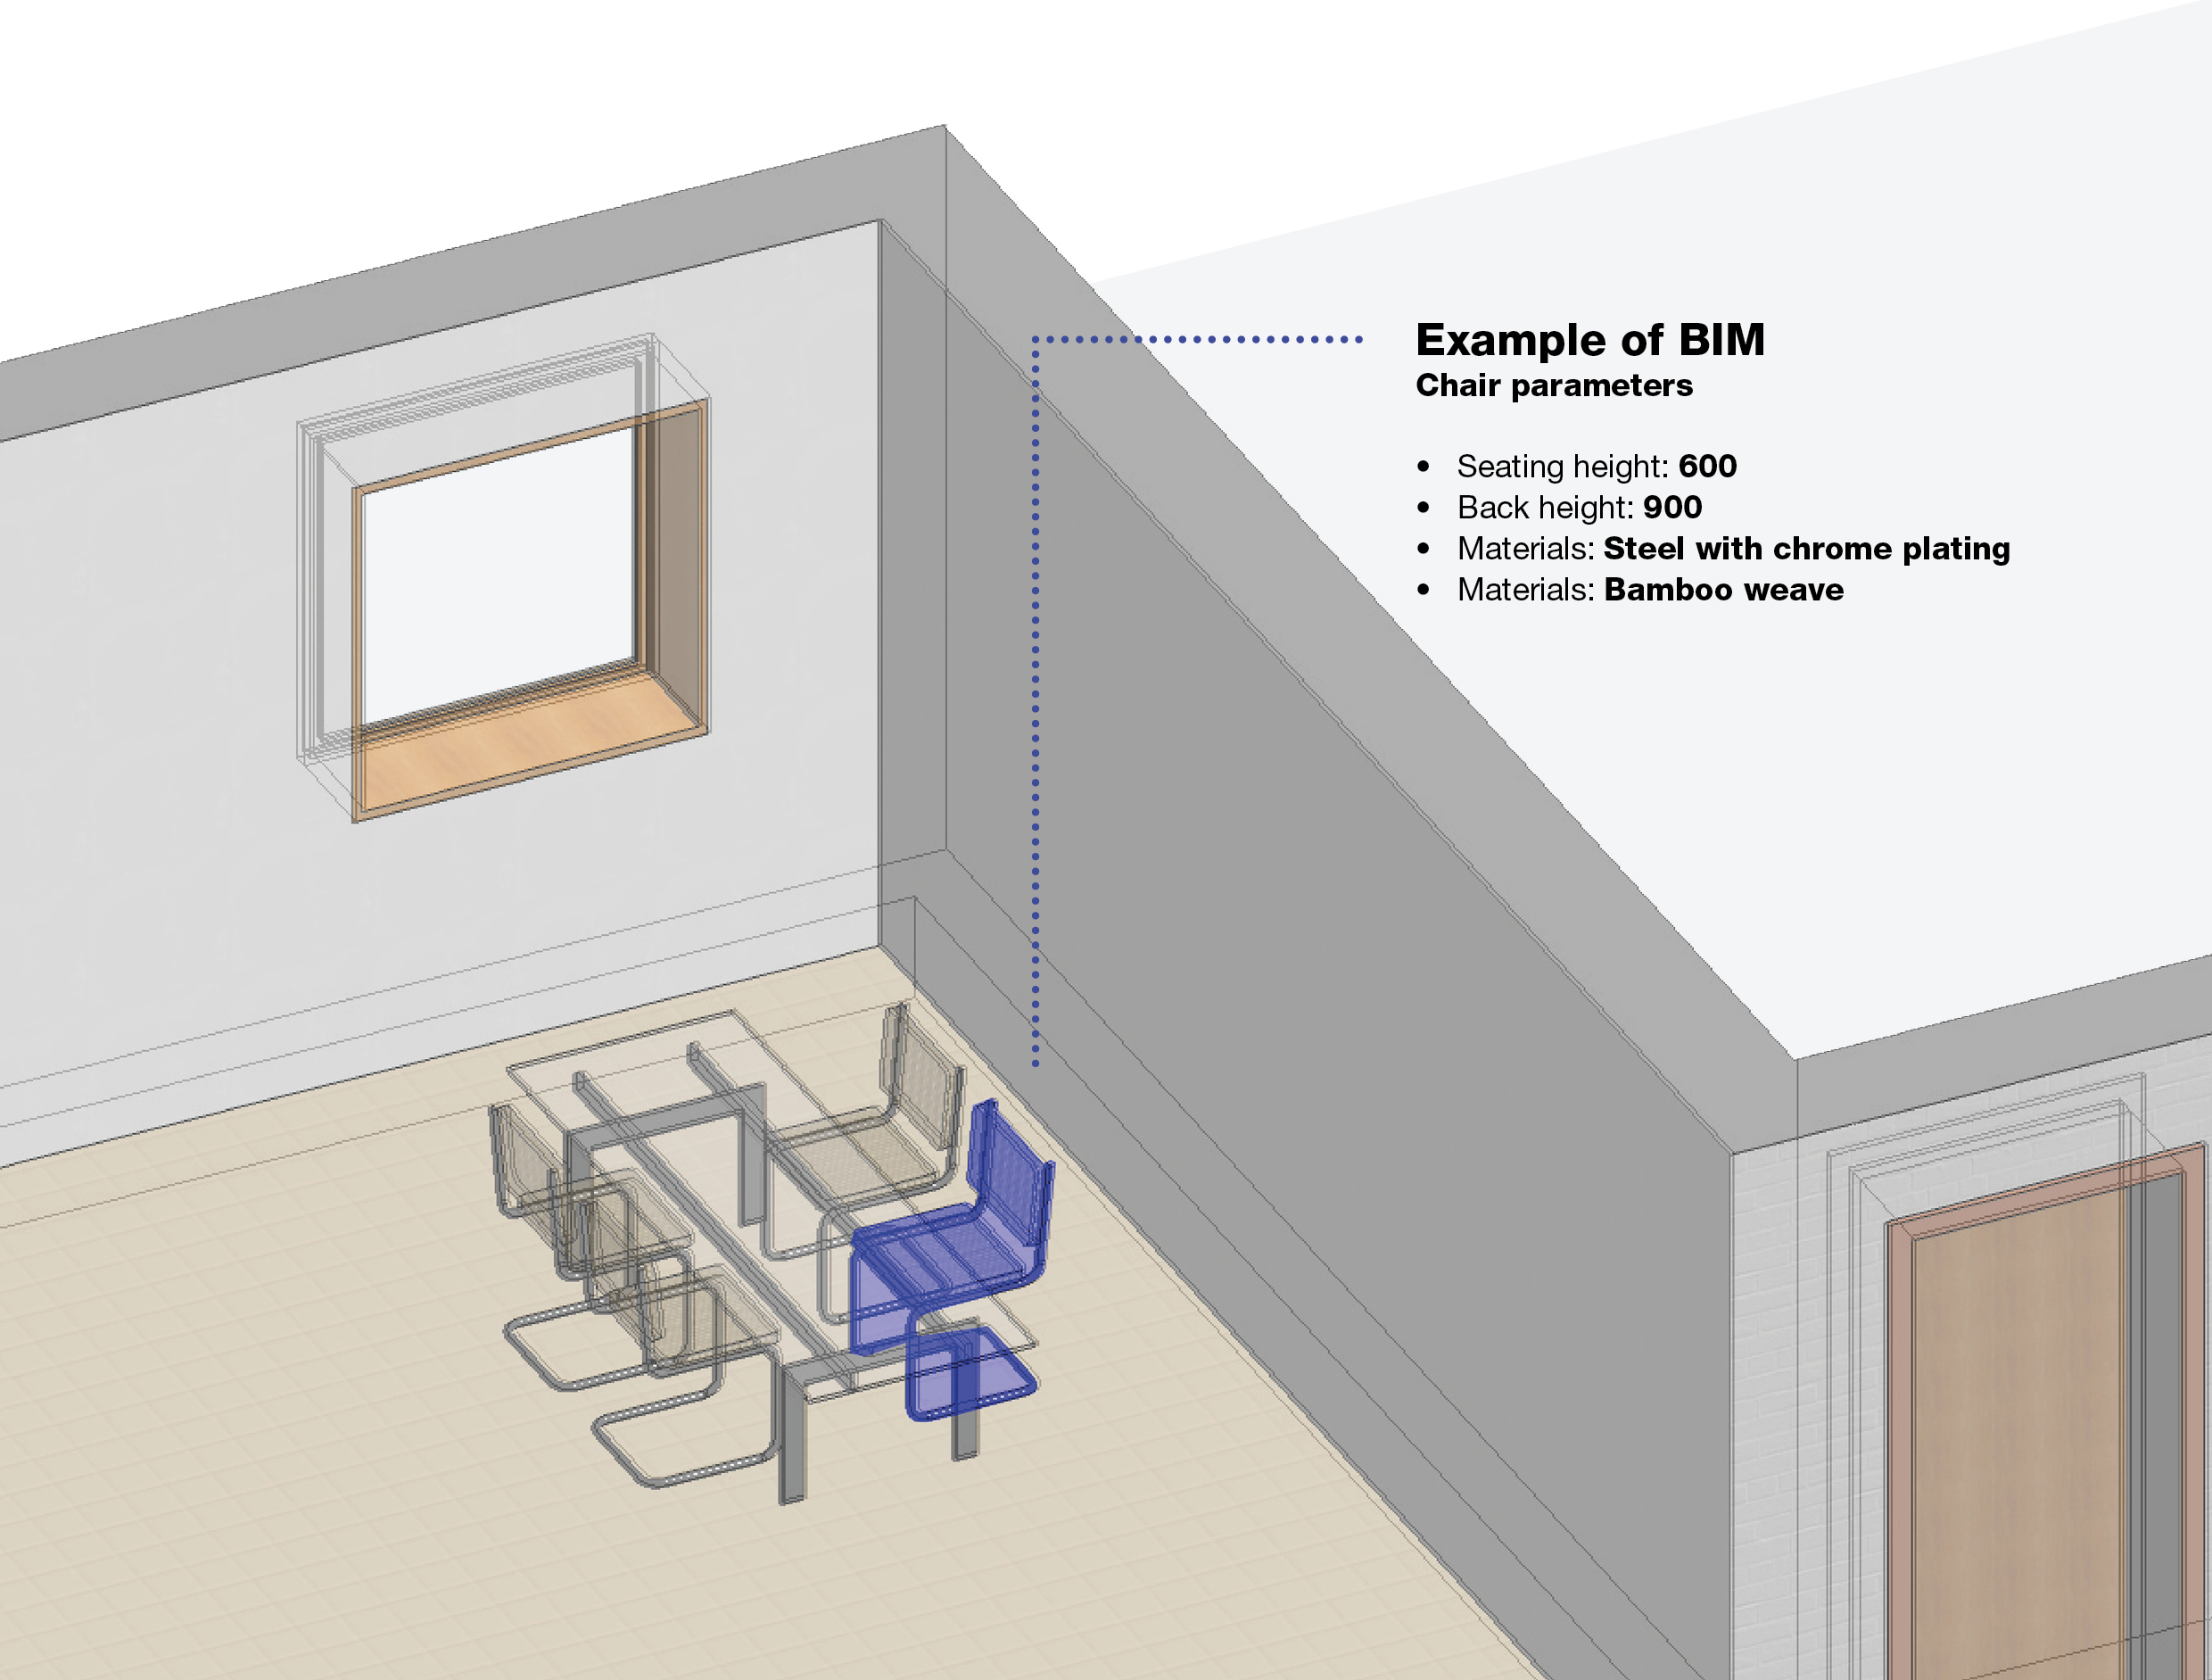 Benefits of using BIM objects as a furniture manufacturer - Cadesign form